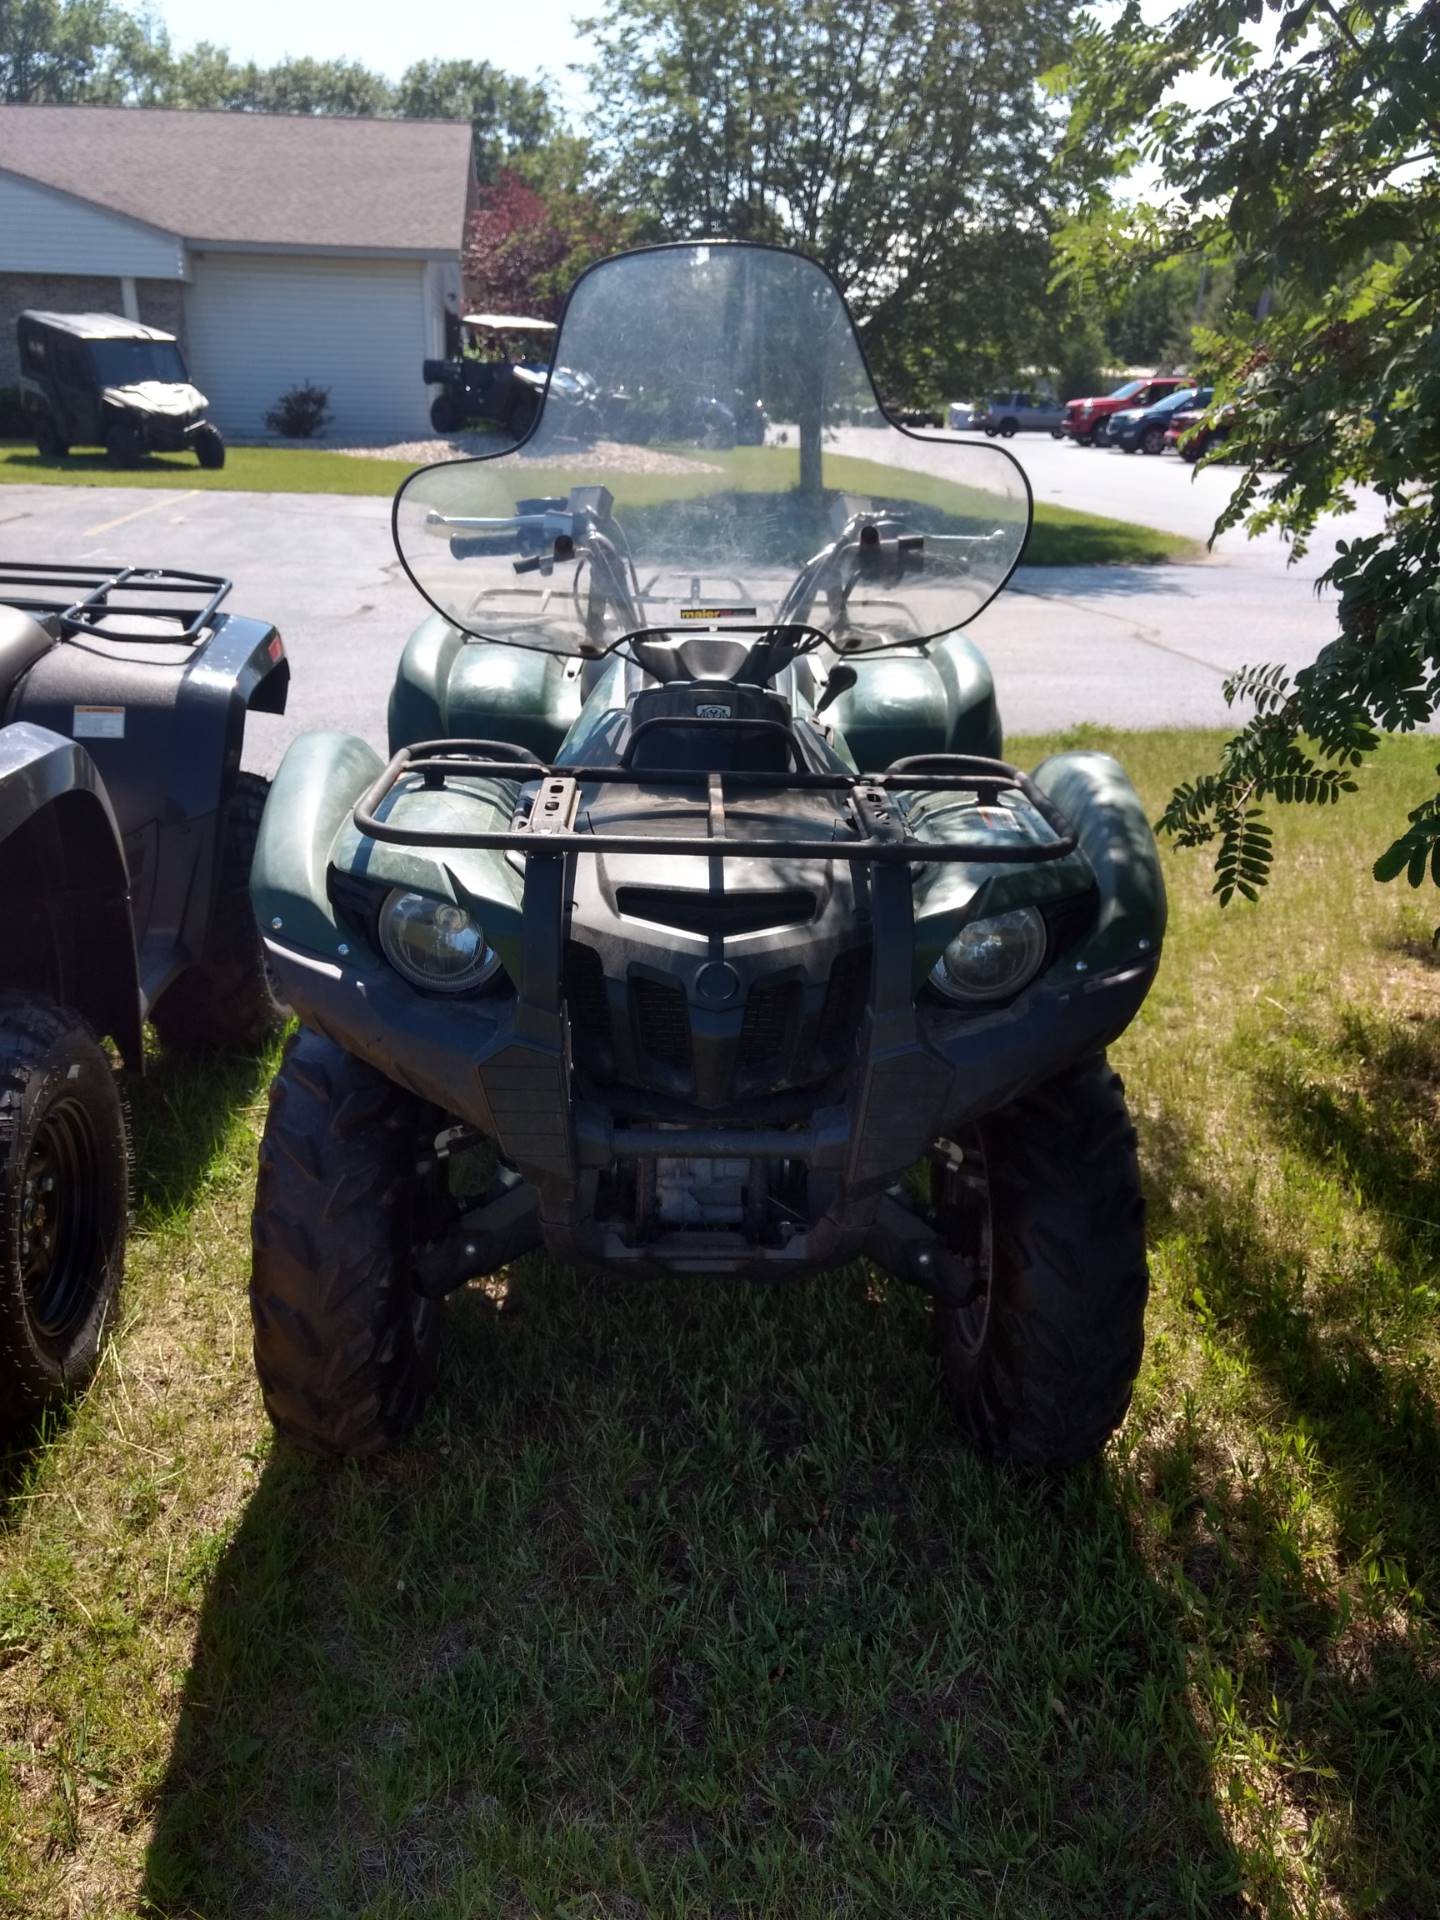 hight resolution of 2012 yamaha grizzly 550 fi auto 4x4 in escanaba michigan photo 1